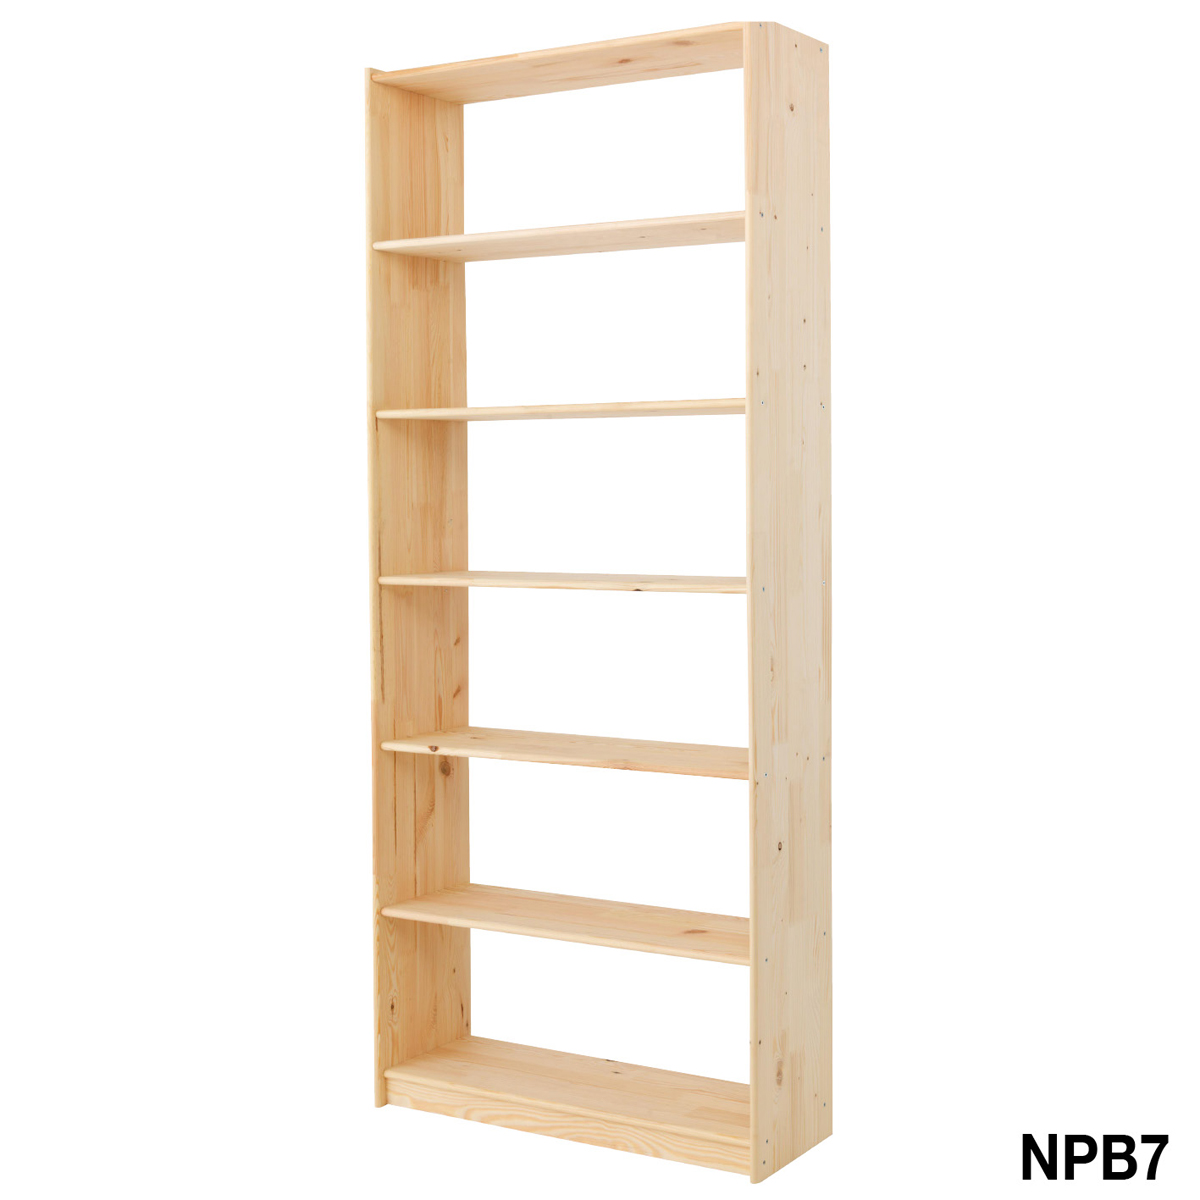 Superb img of  and Racking Natural Pine 7 Level Wooden Bookcase 1921hx800wx300d with #865328 color and 1200x1200 pixels